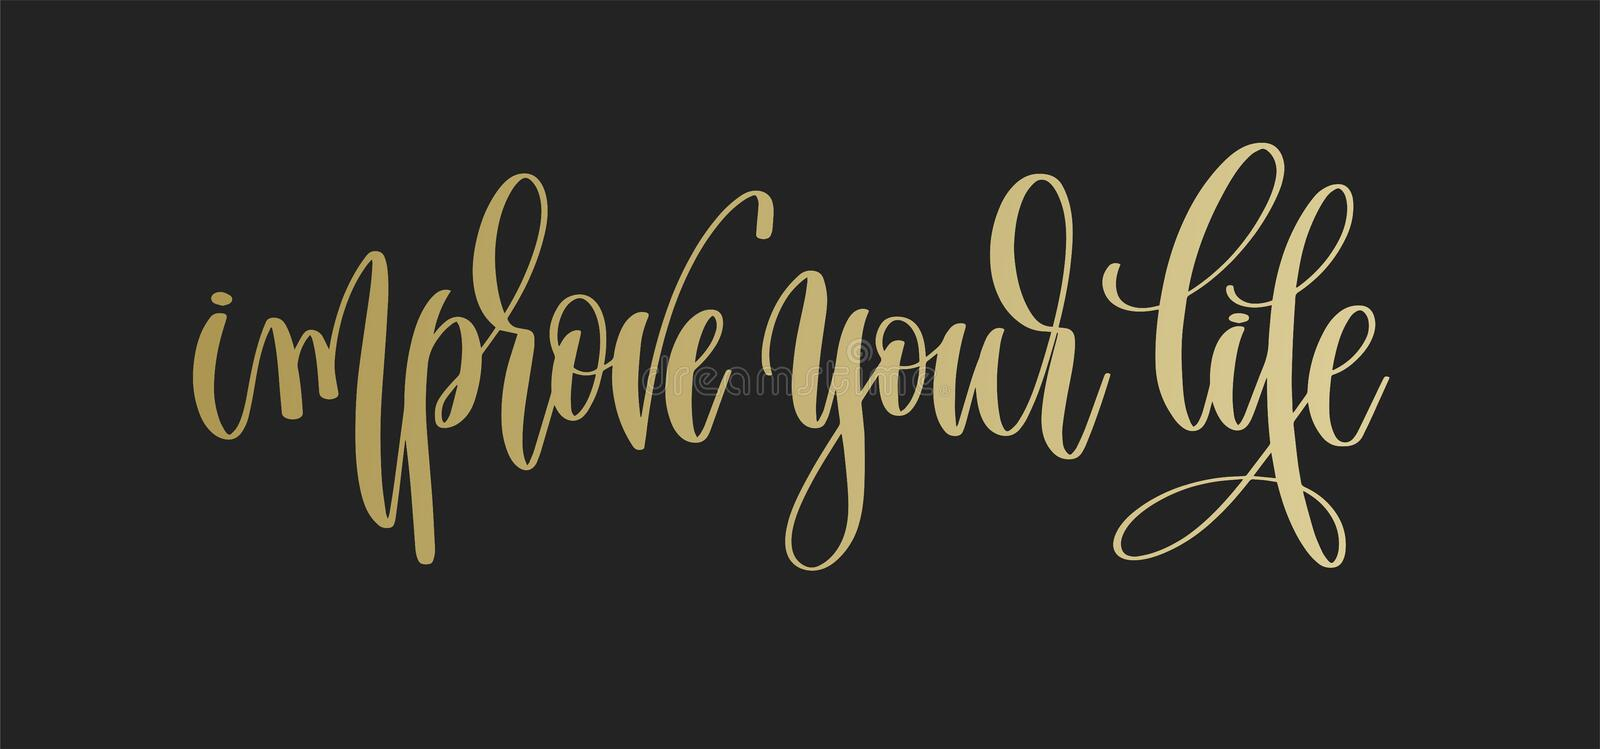 Improve your life - golden hand lettering inscription text stock illustration